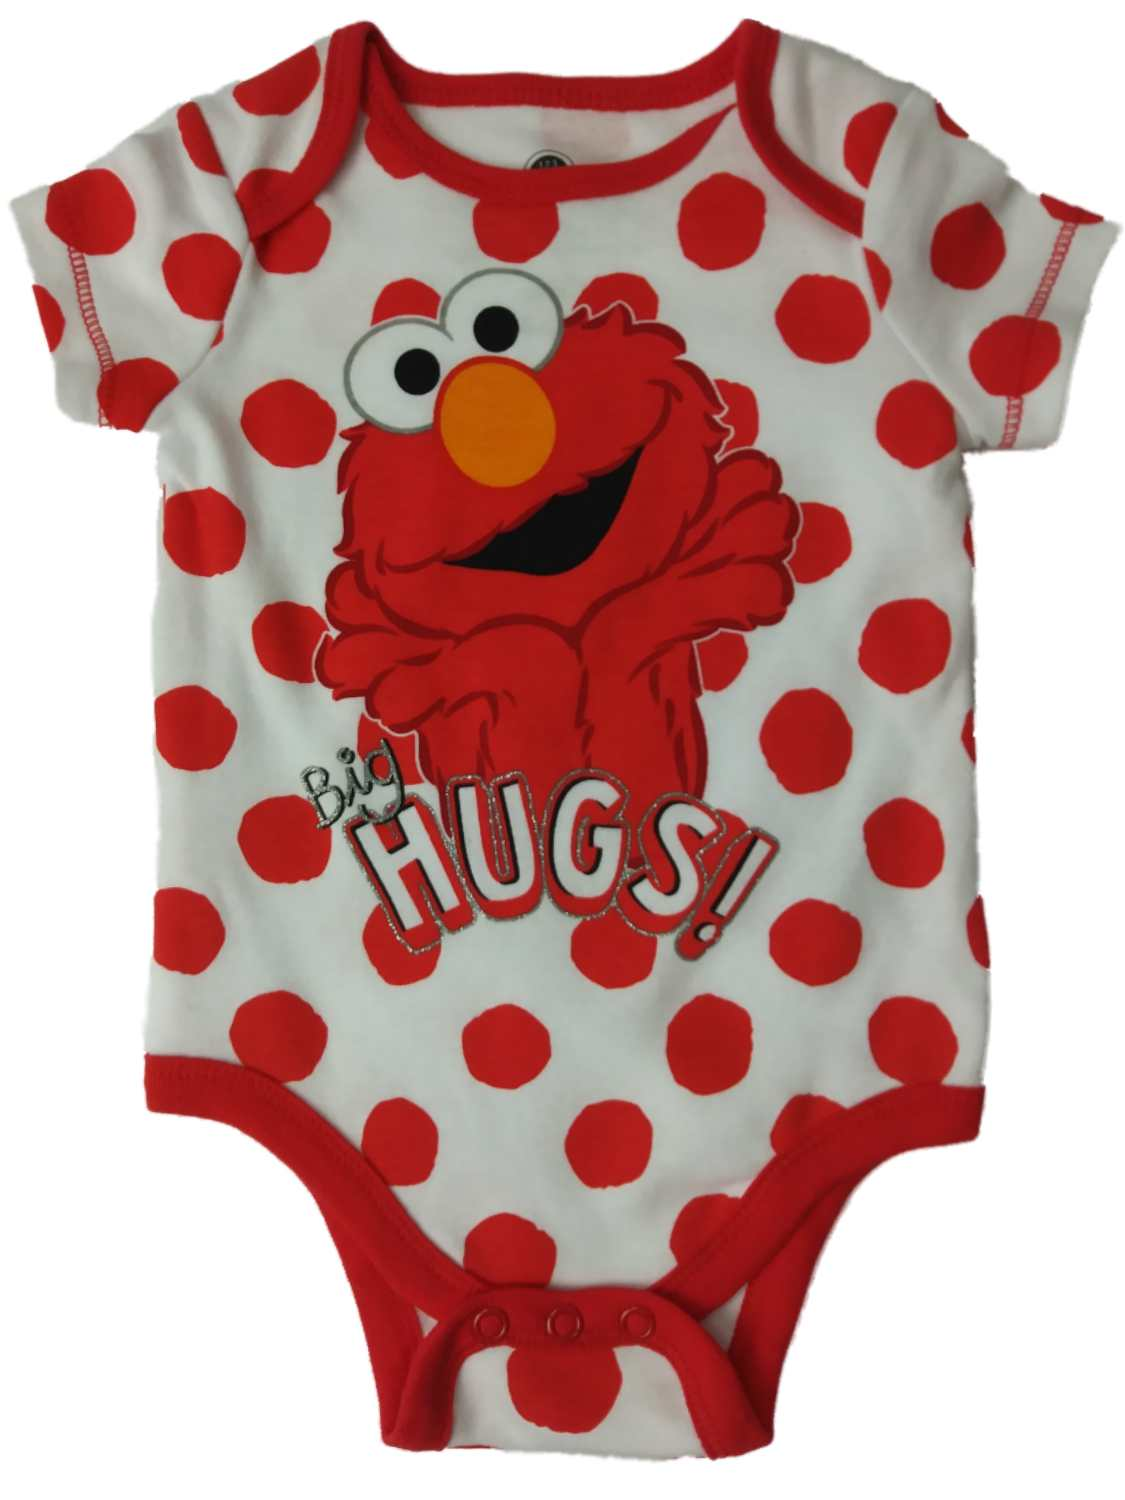 Infant Girls Sesame Street Elmo Big Hugs Single Outfit Polka Dot Baby Bodysuit